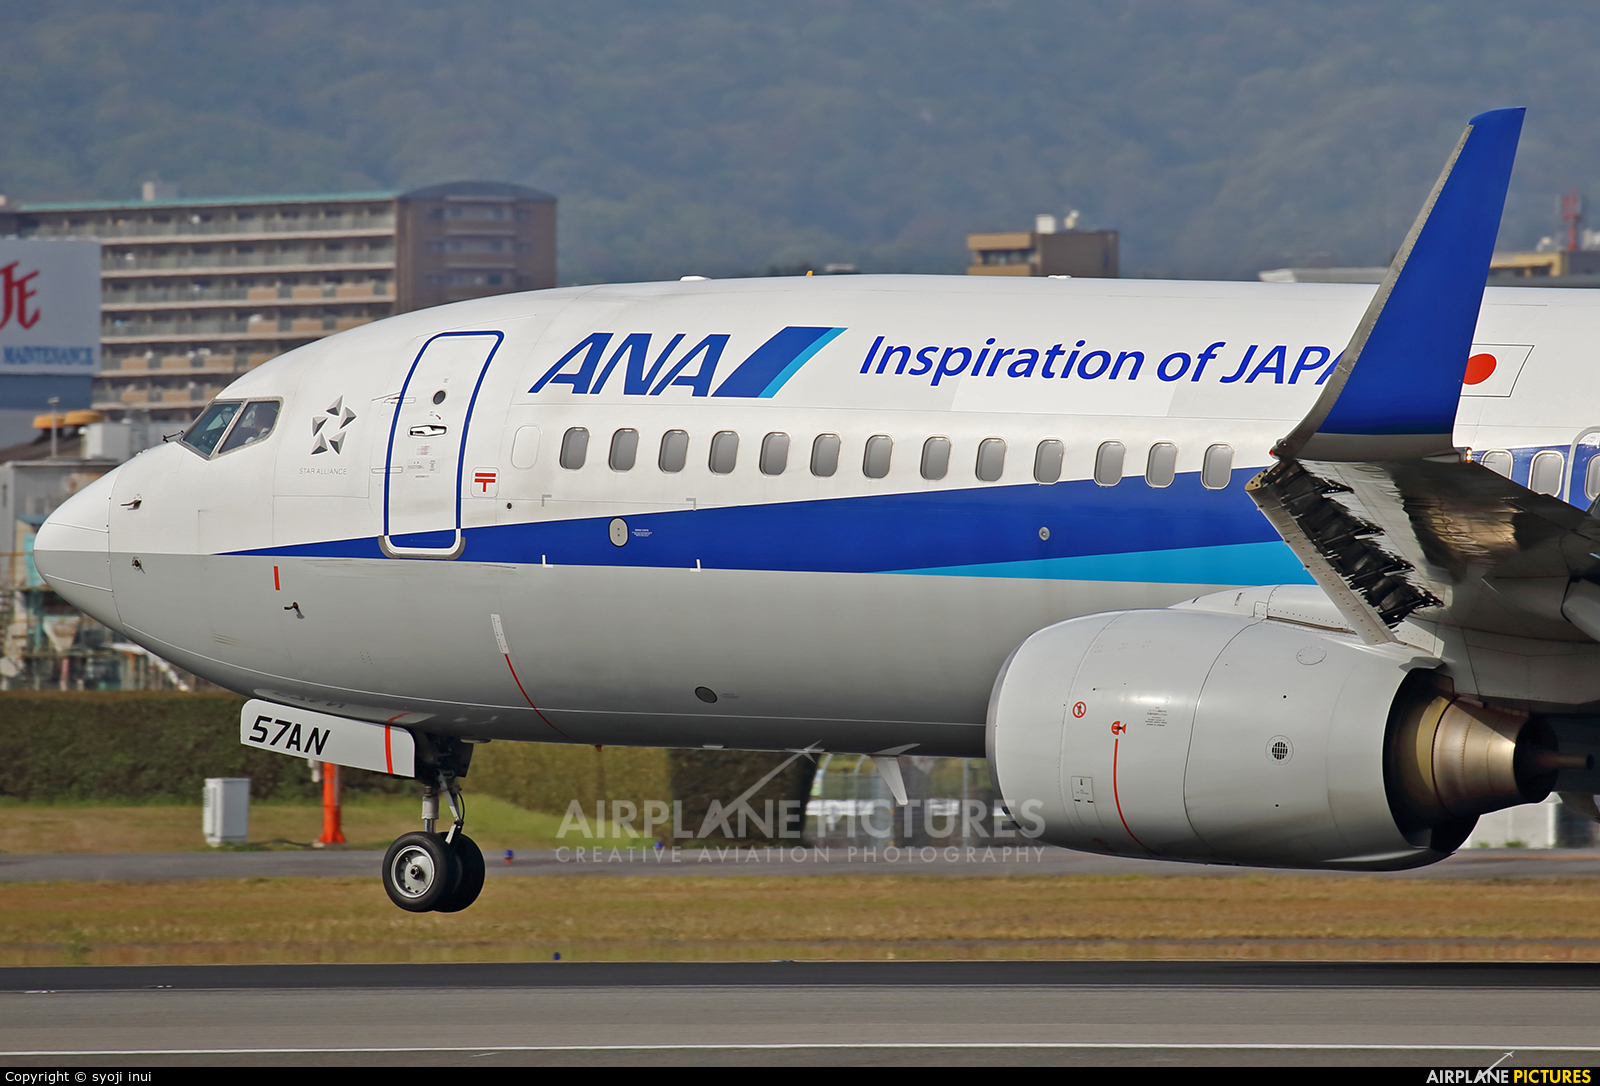 ANA - All Nippon Airways JA57AN aircraft at Osaka - Itami Intl